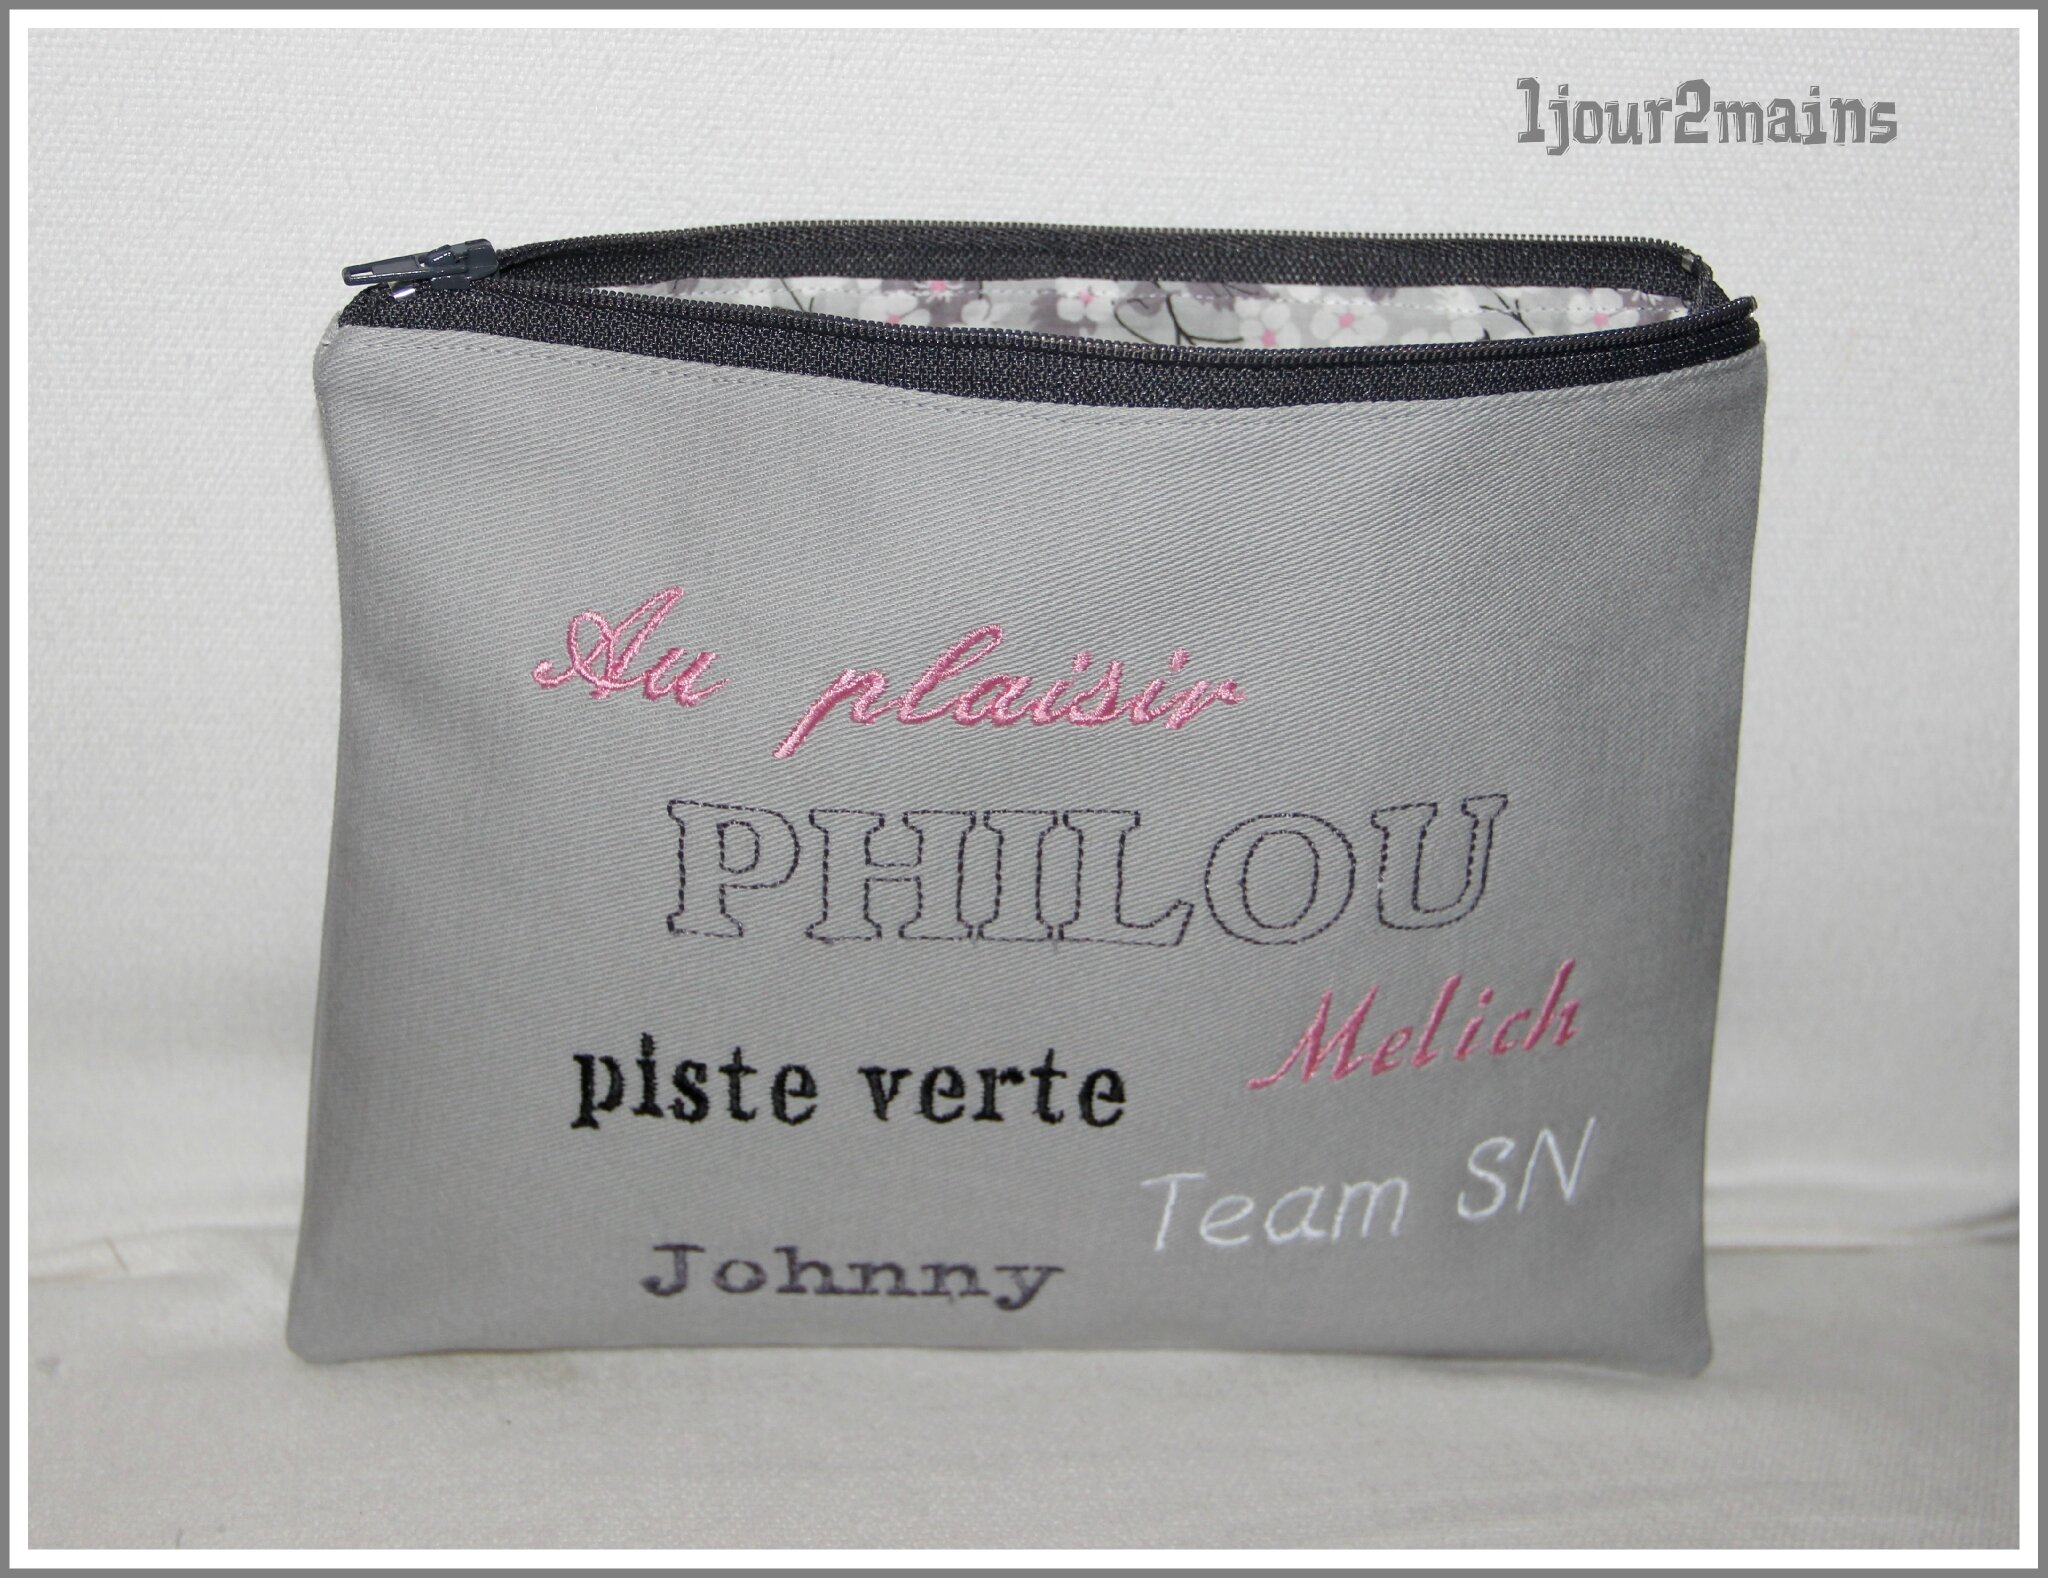 trousse philou face